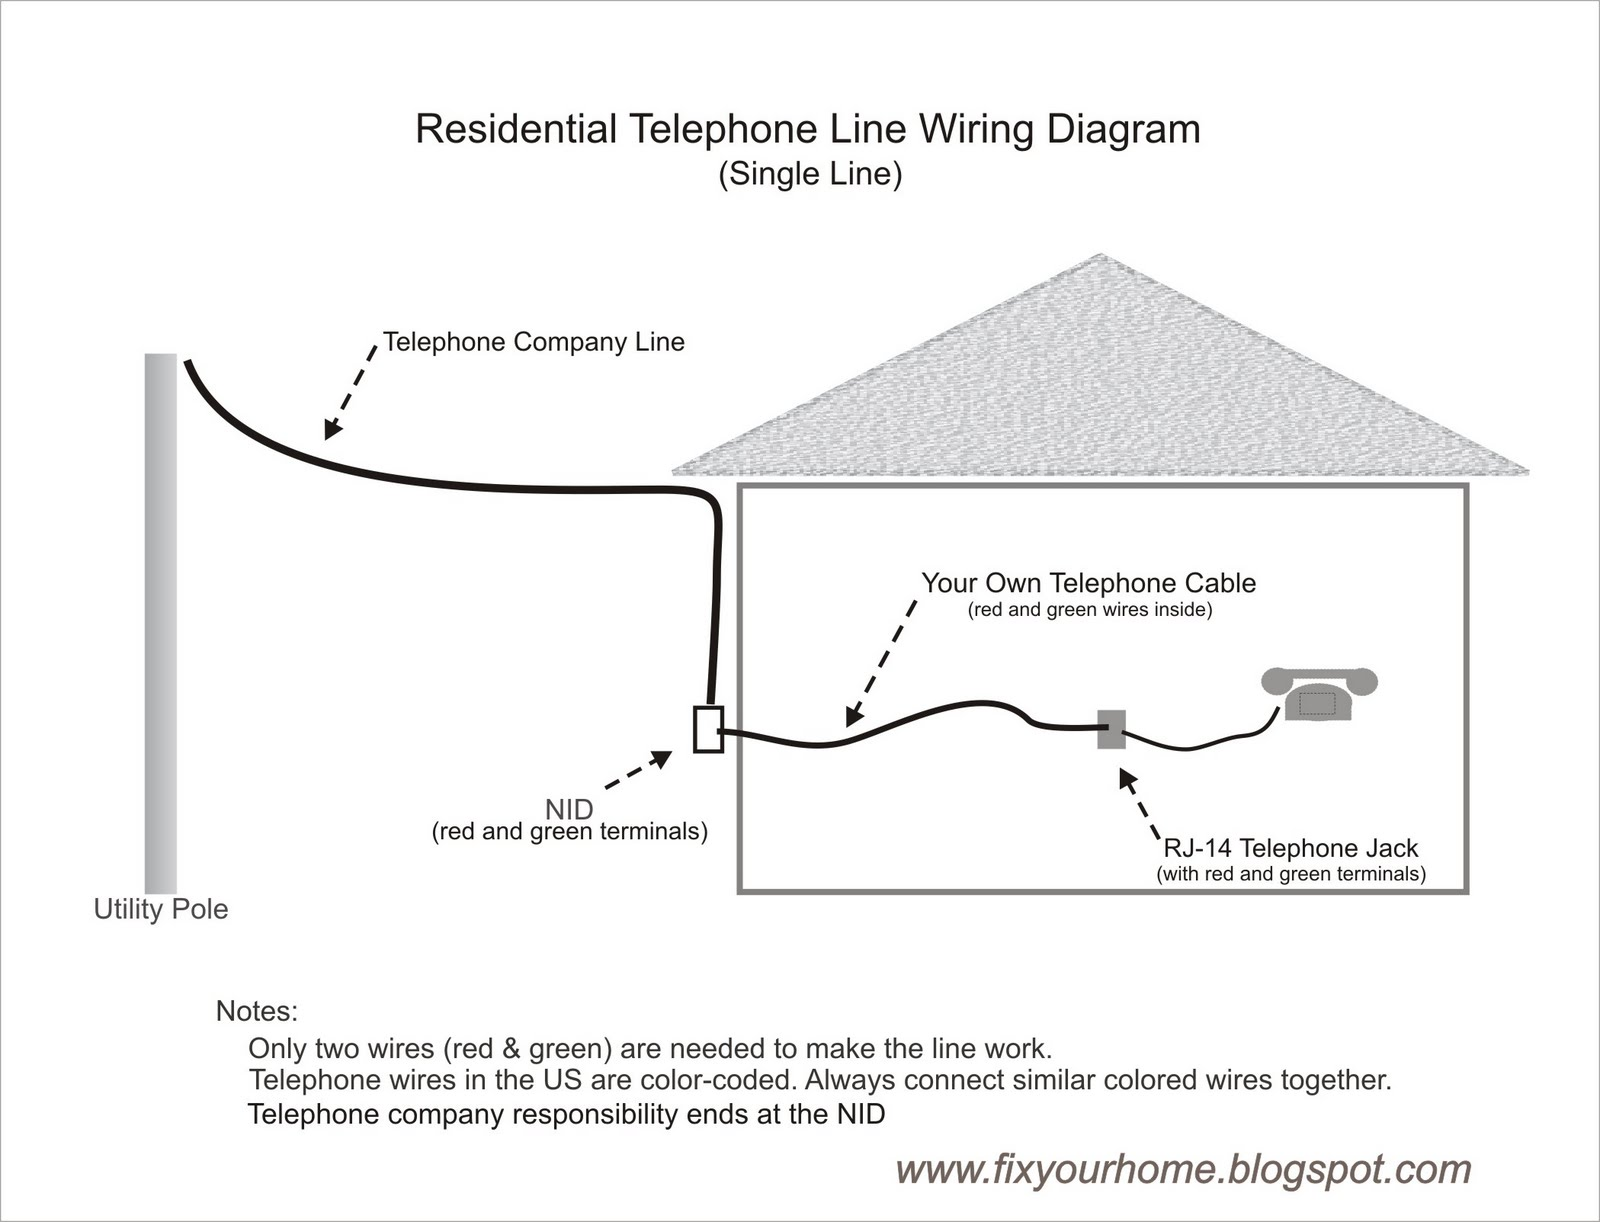 House Wiring Notes The wiring diagram – Residential Wiring Diagrams Your Home